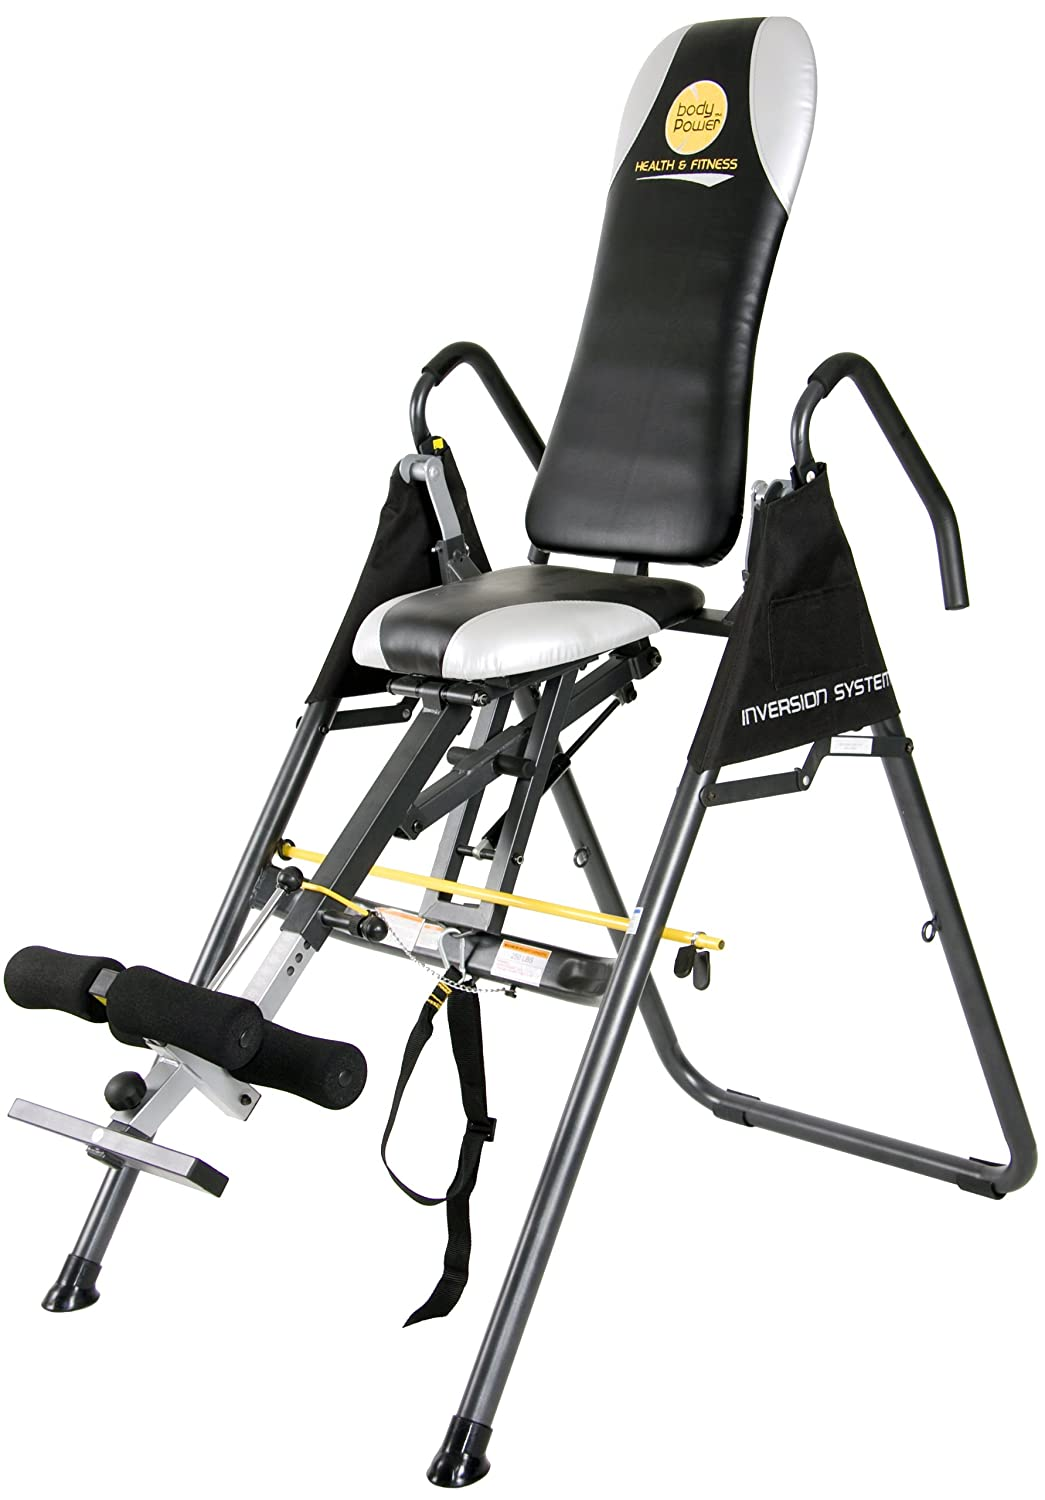 Body Power IT7200 Deluxe Seated Inversion System